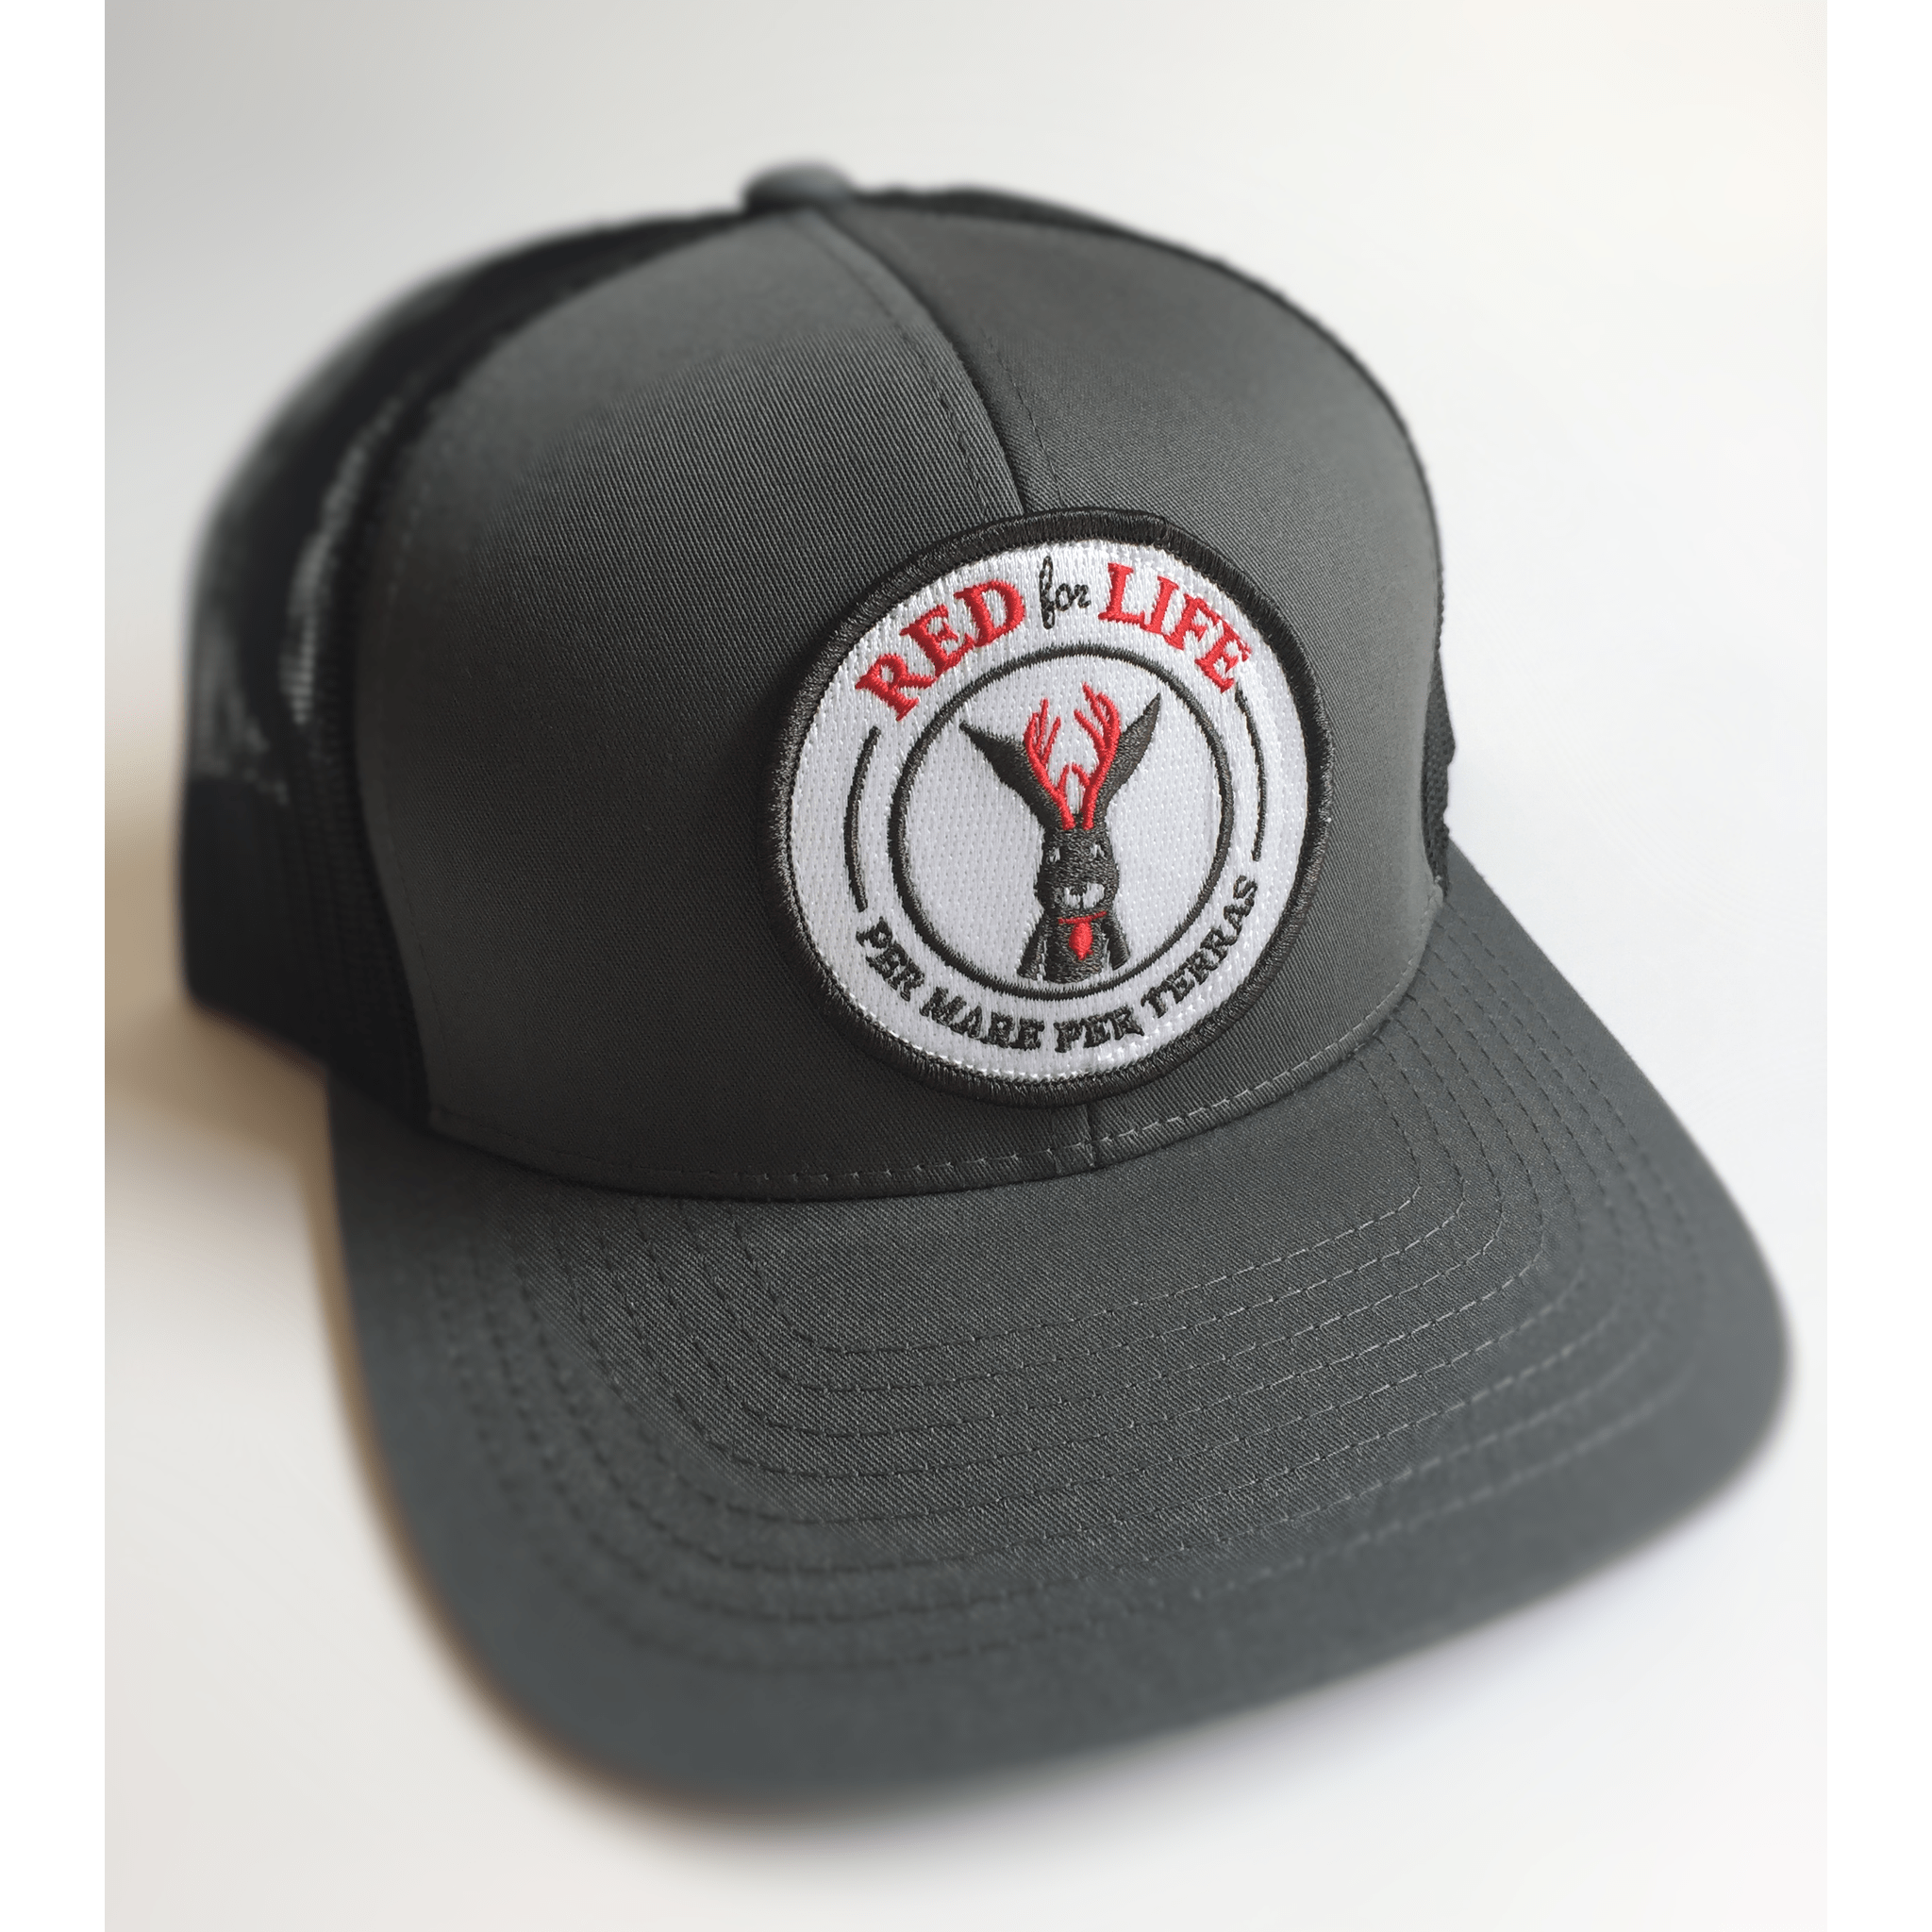 f134fe80c9e Red for Life Graphite Black Trucker Hat